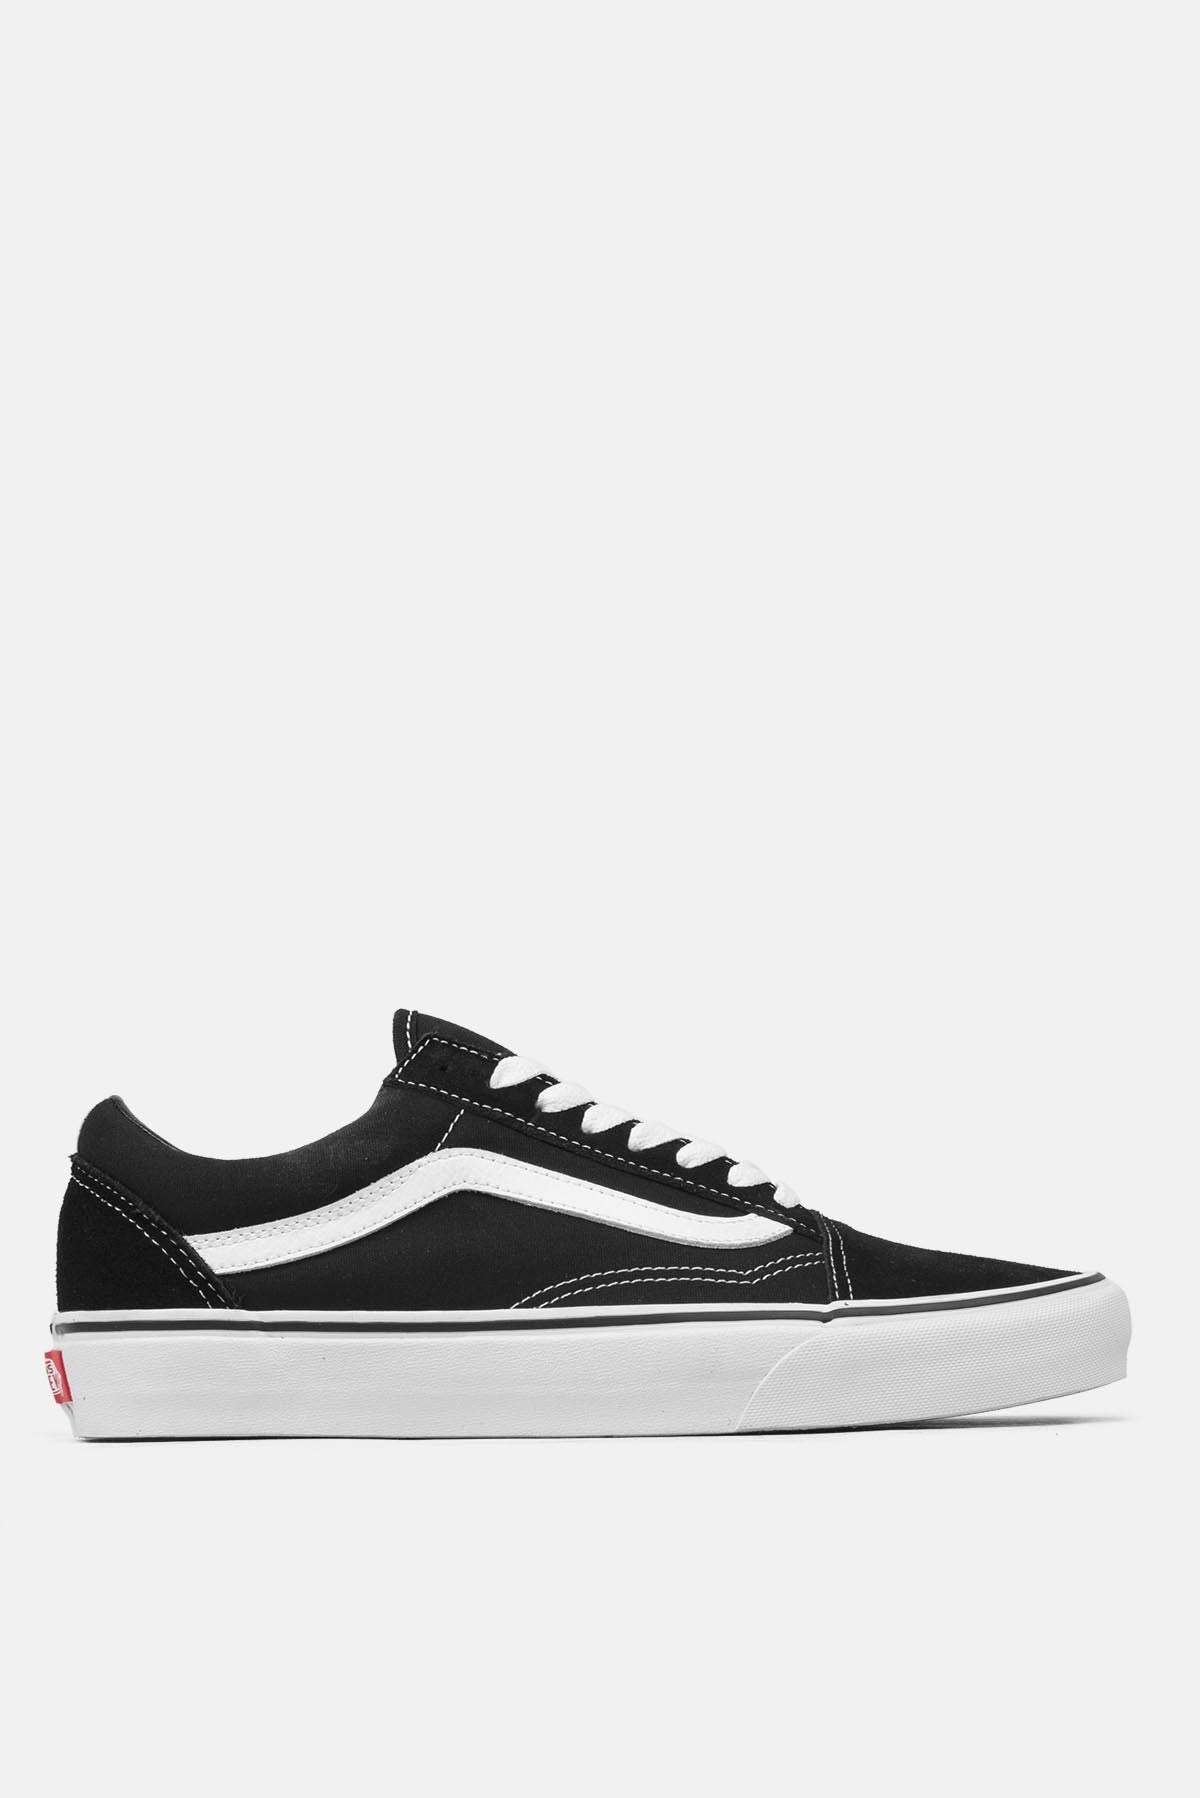 Sur Priory Old Disponible Chaussures Skool Vans trdoshCBQx